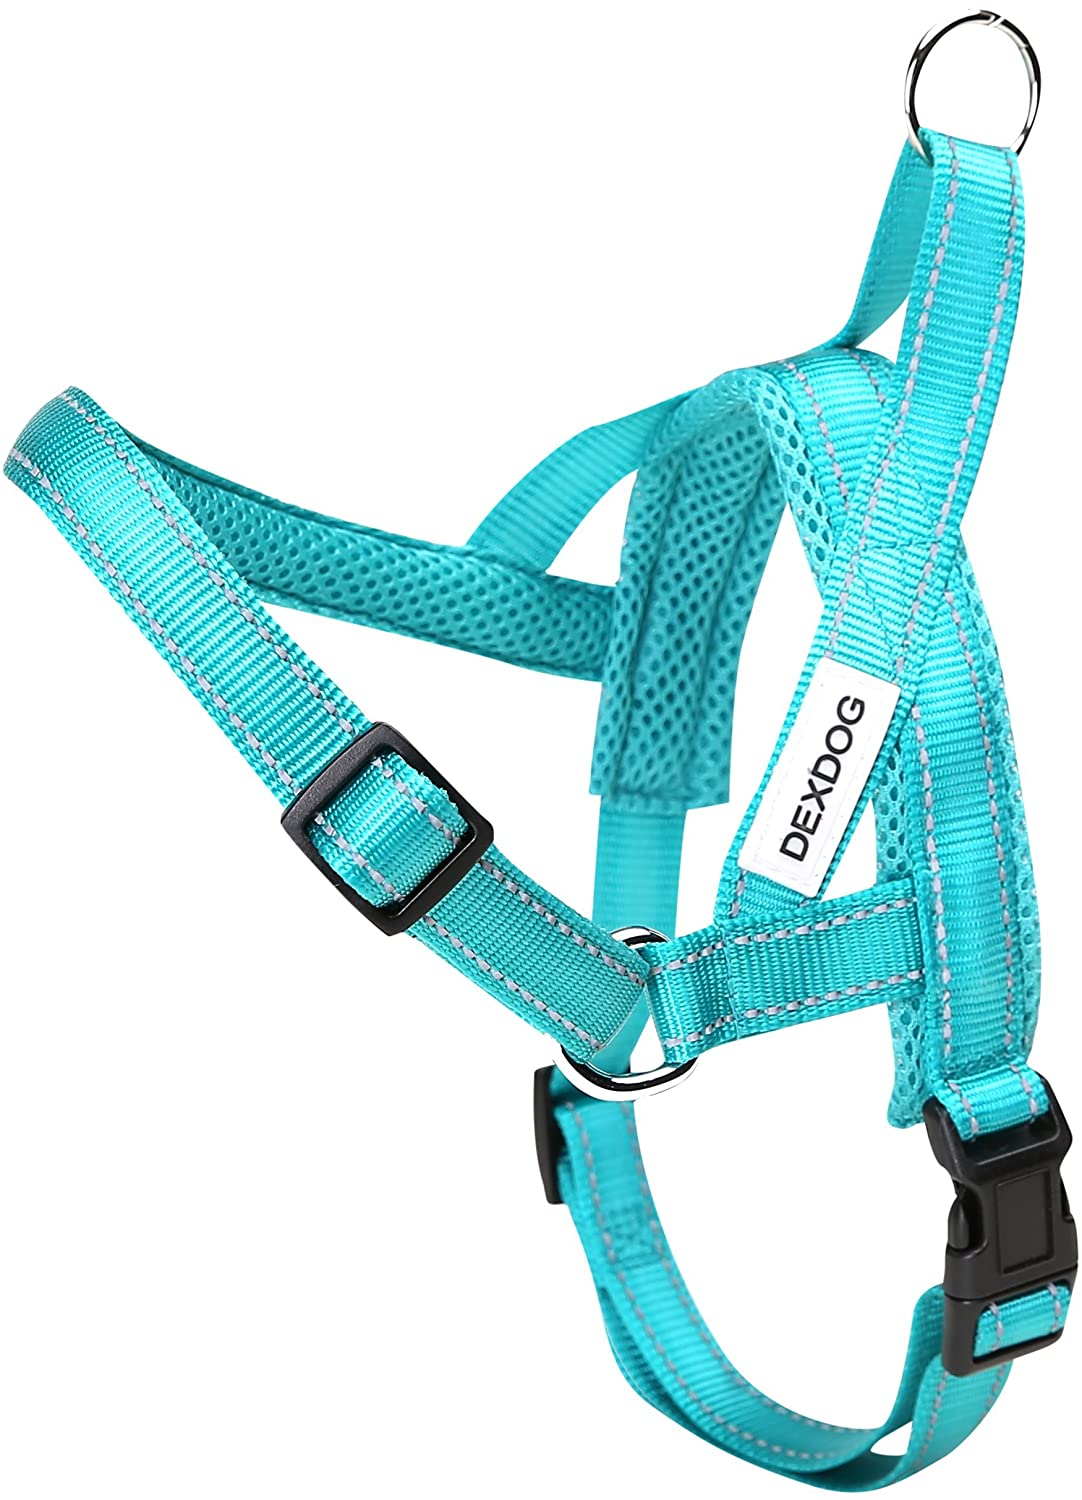 DEXDOG EZHarness, Dog Harness | On/Off Quick | Easy Step In | Walk Vest [Turquoise, X-Small]